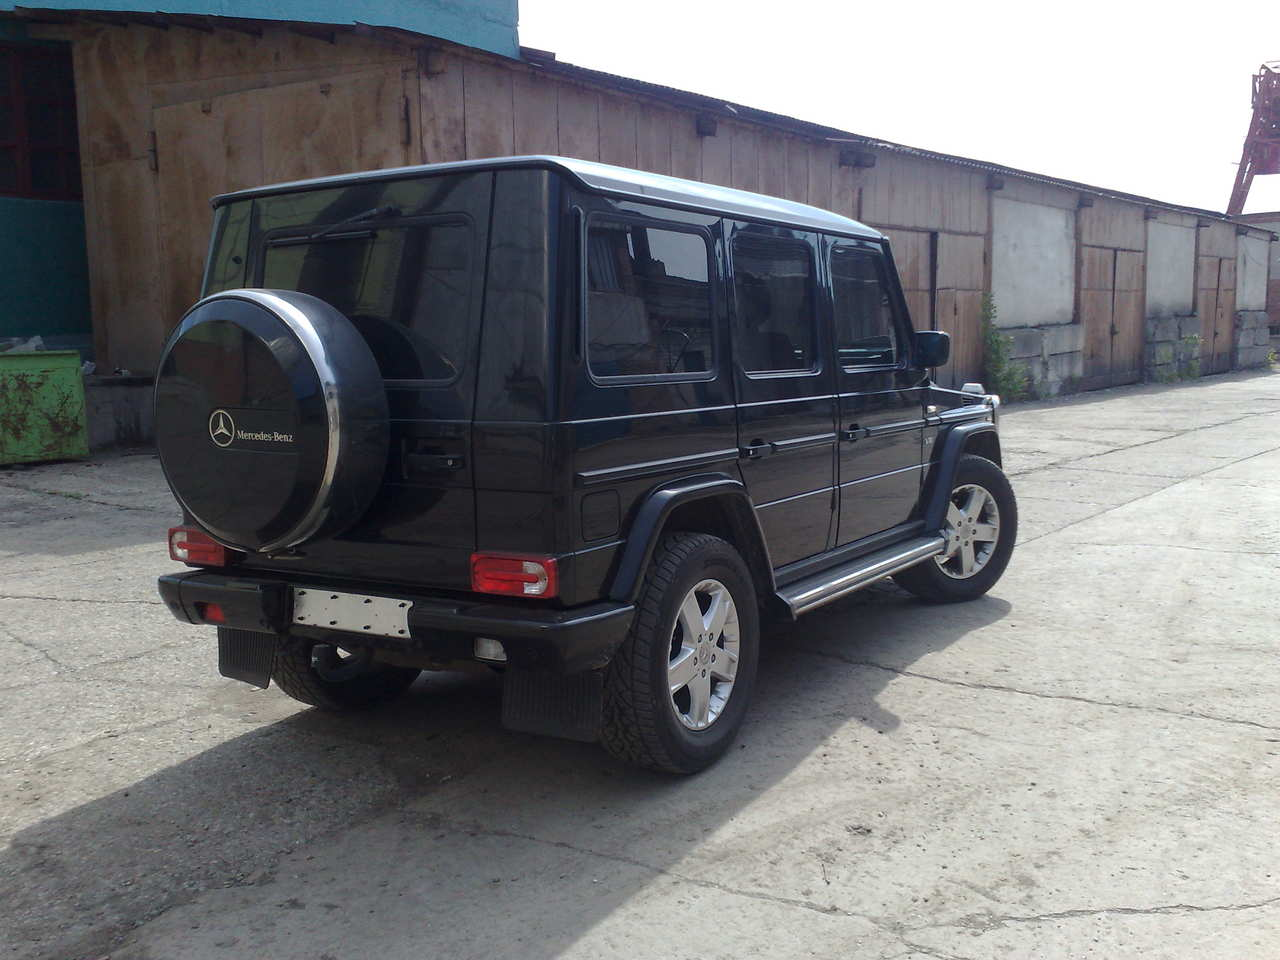 2000 mercedes benz g class photos 5 0 gasoline automatic for sale. Black Bedroom Furniture Sets. Home Design Ideas